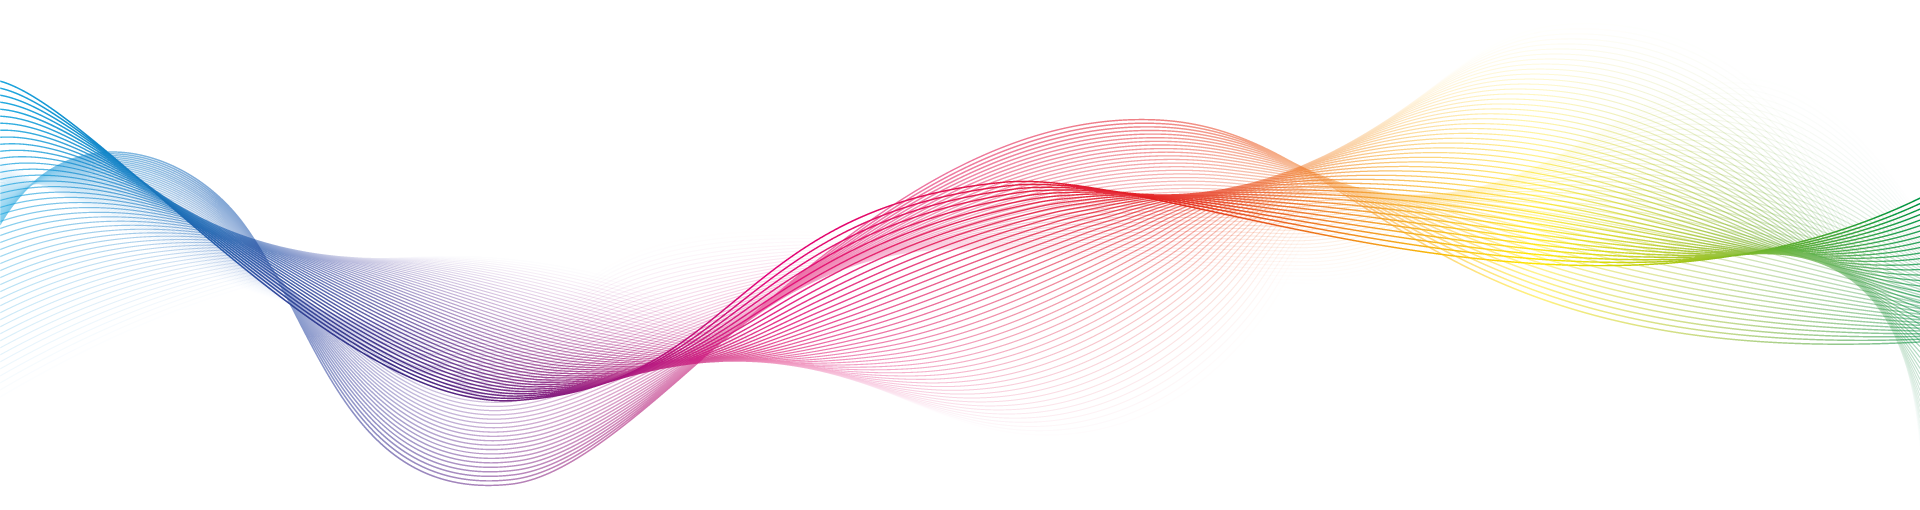 Floating wave graphic